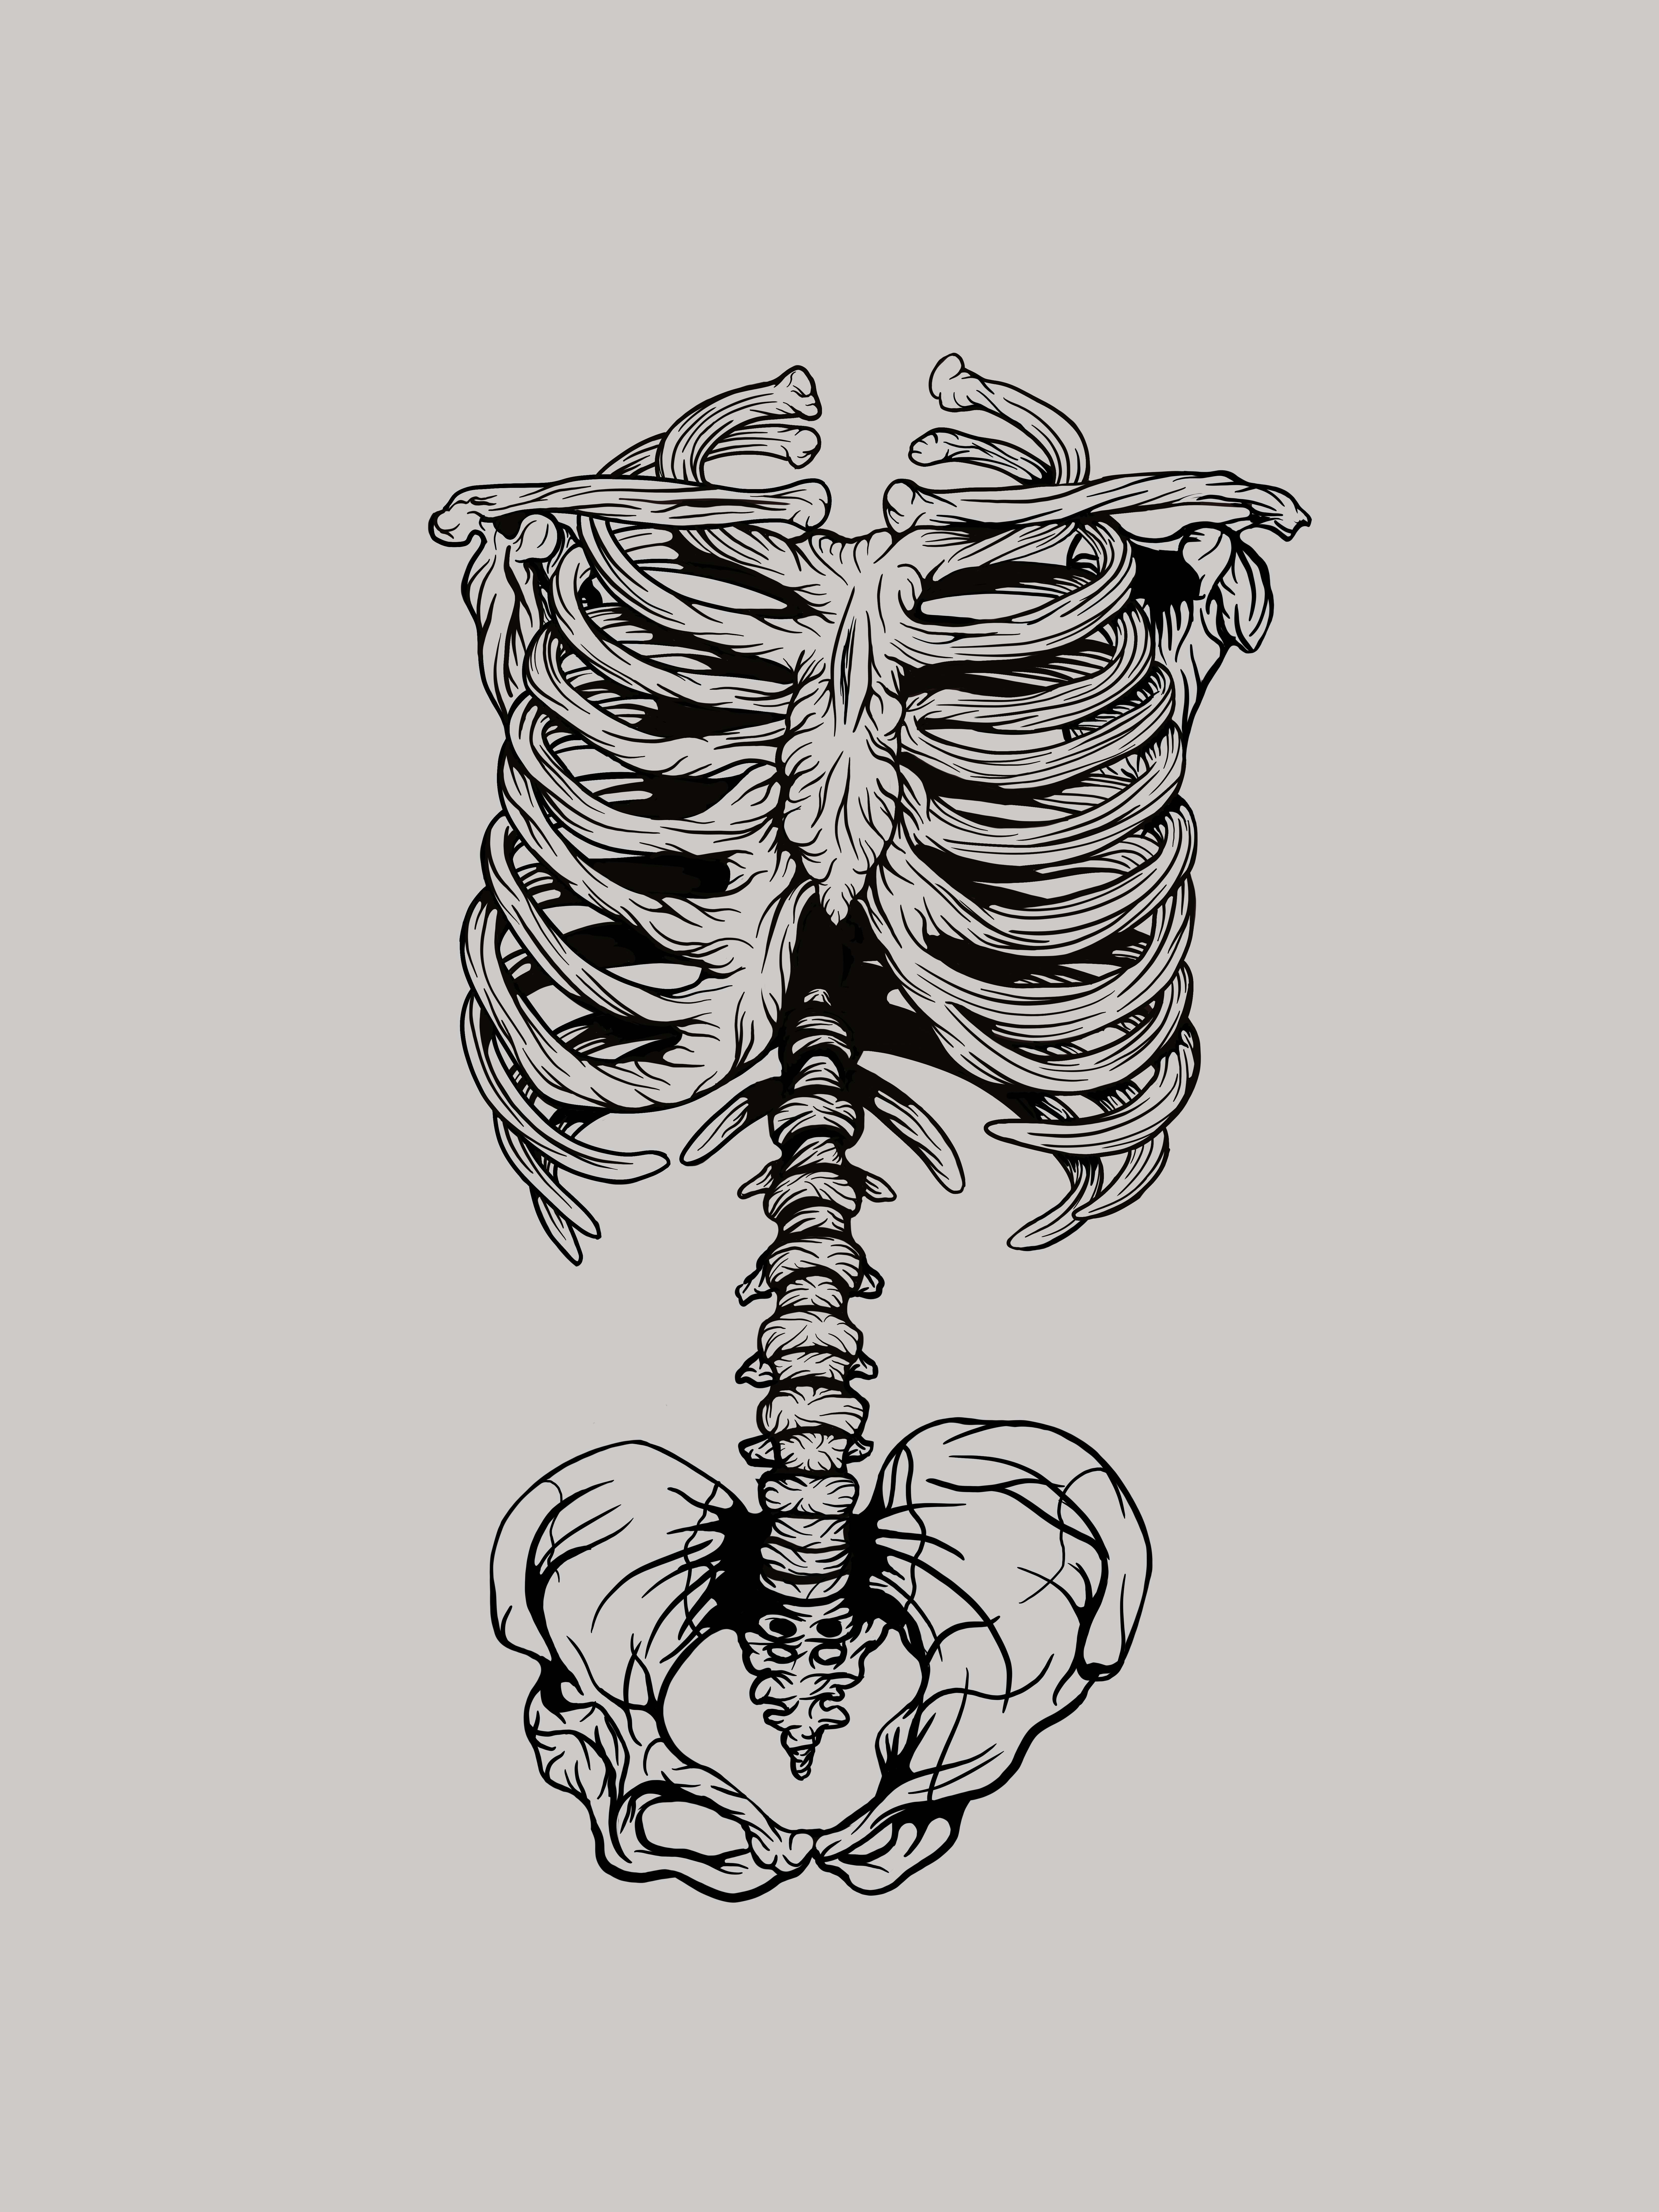 Rib Cage Drawing Photos and Premium High Res... - Getty Images